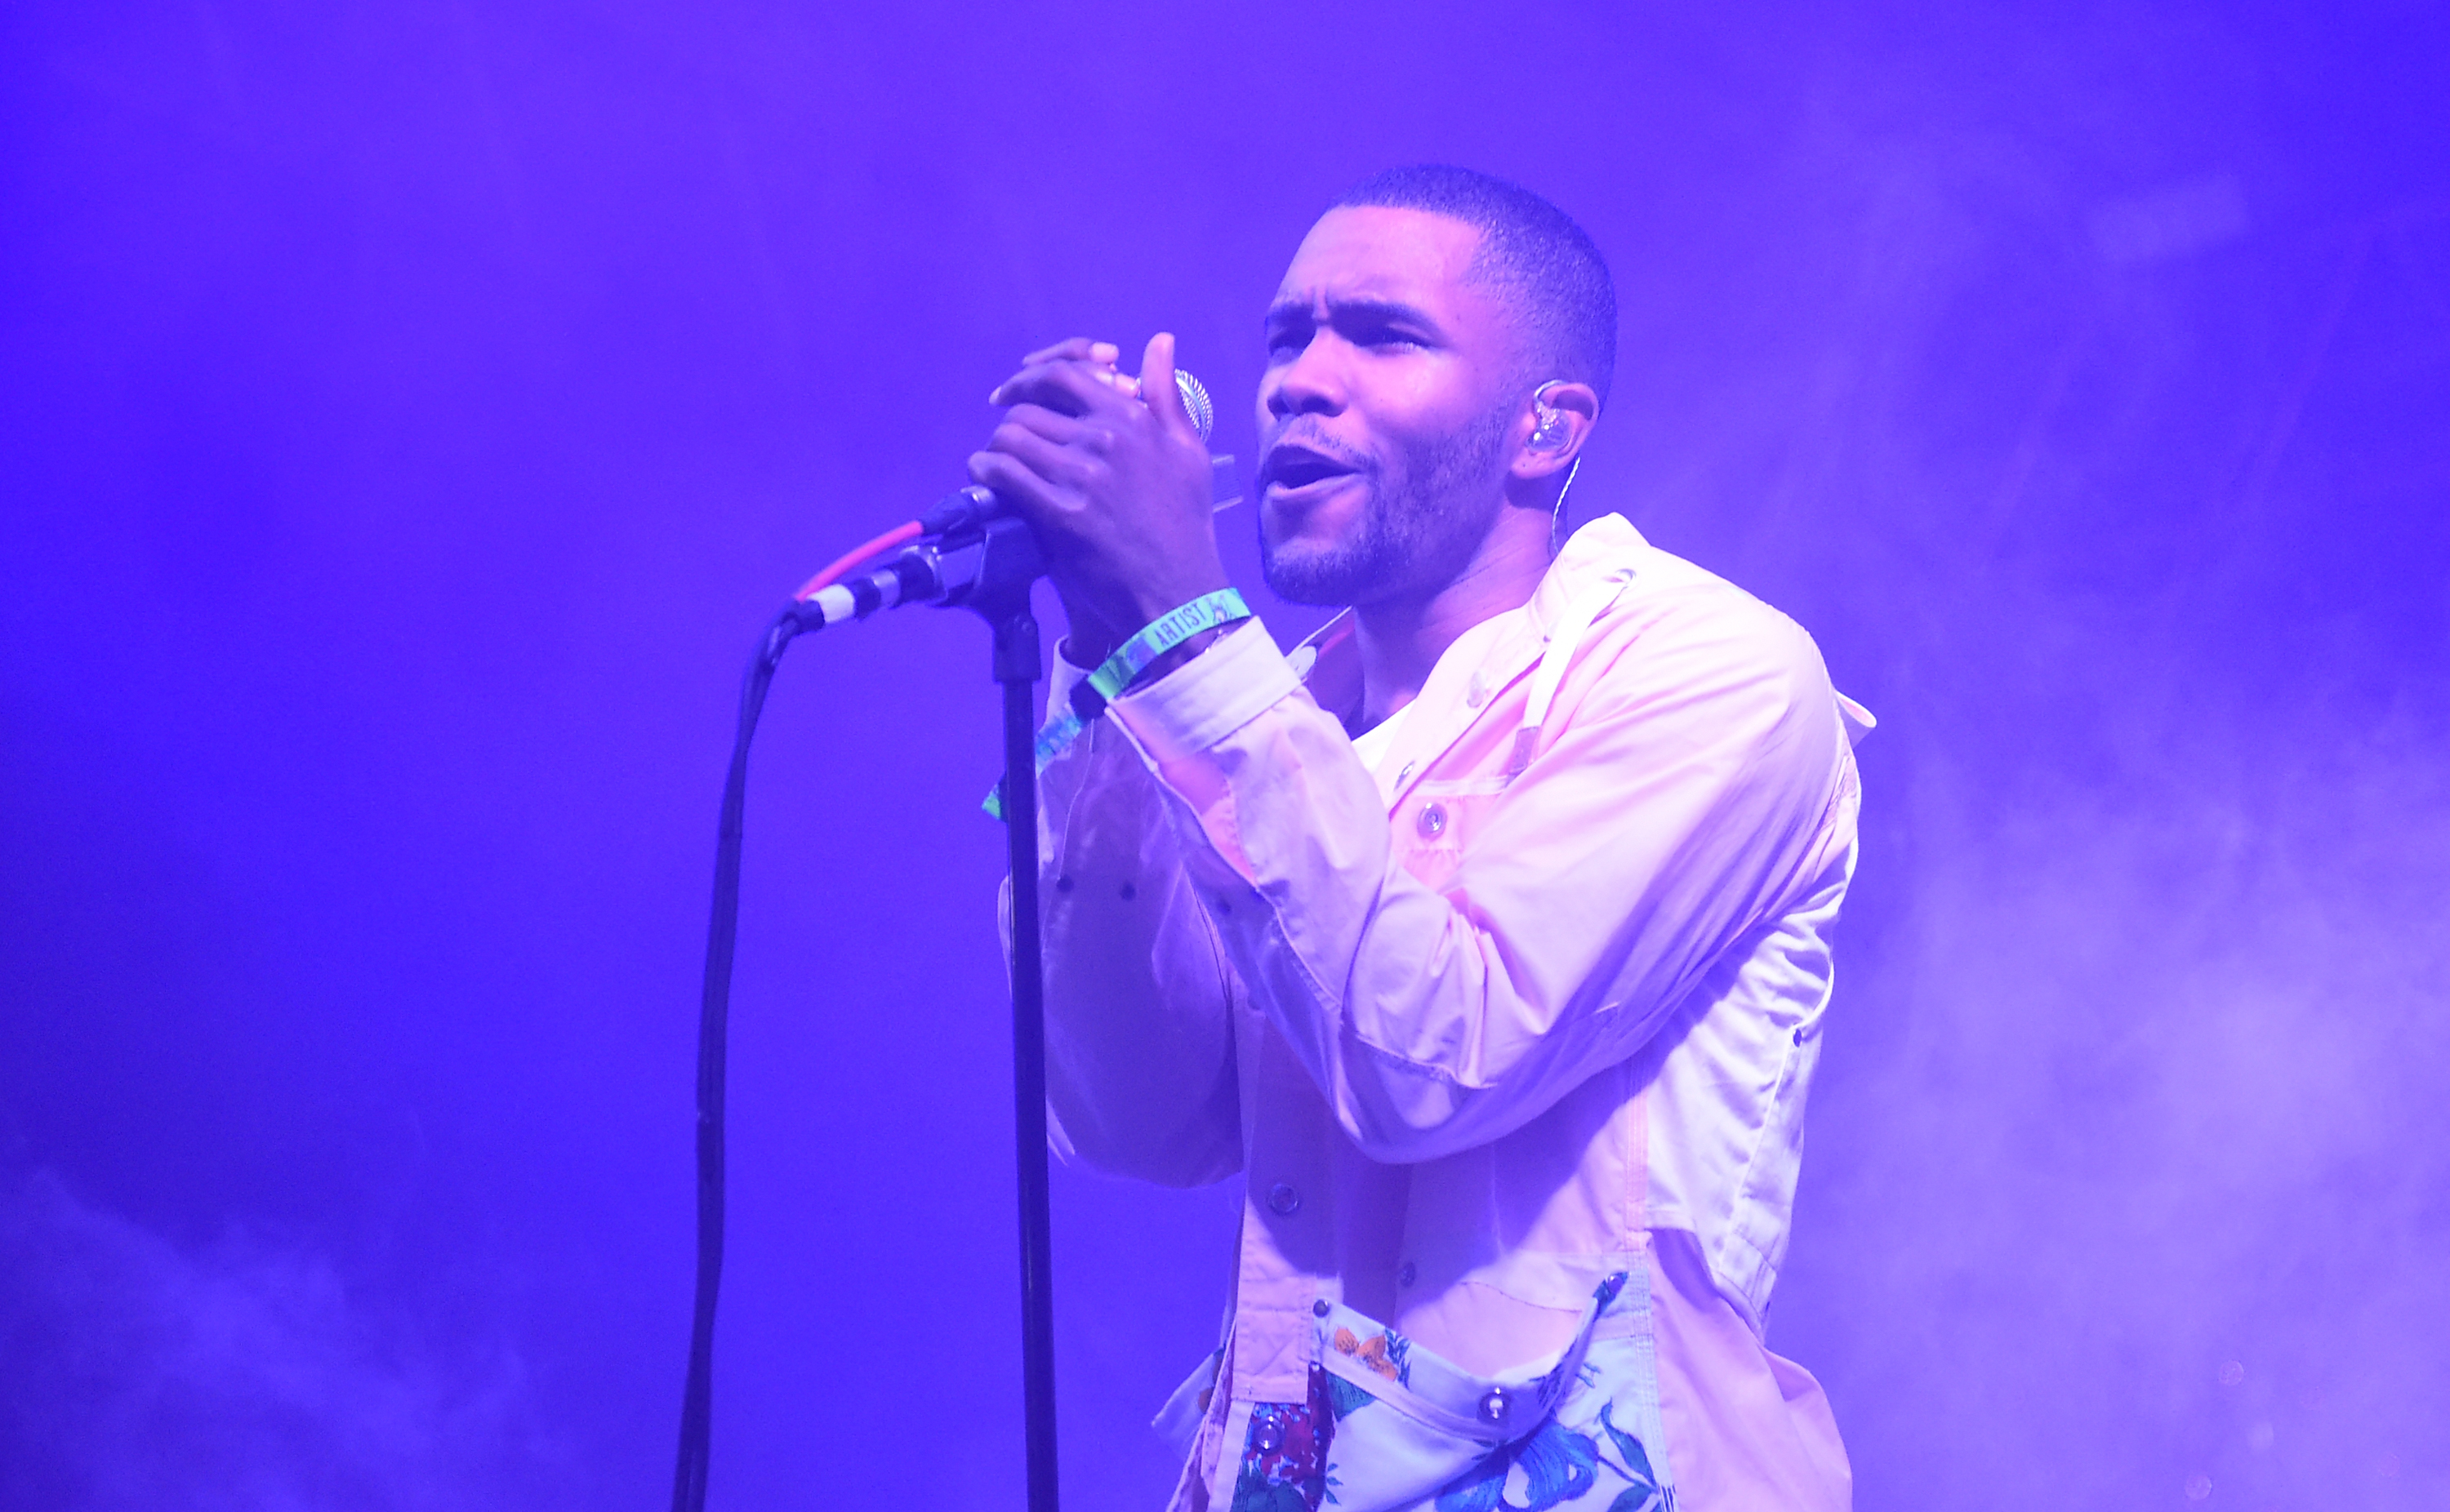 12 tweets about the new Frank Ocean album that prove the internet cannot handle waiting anymore